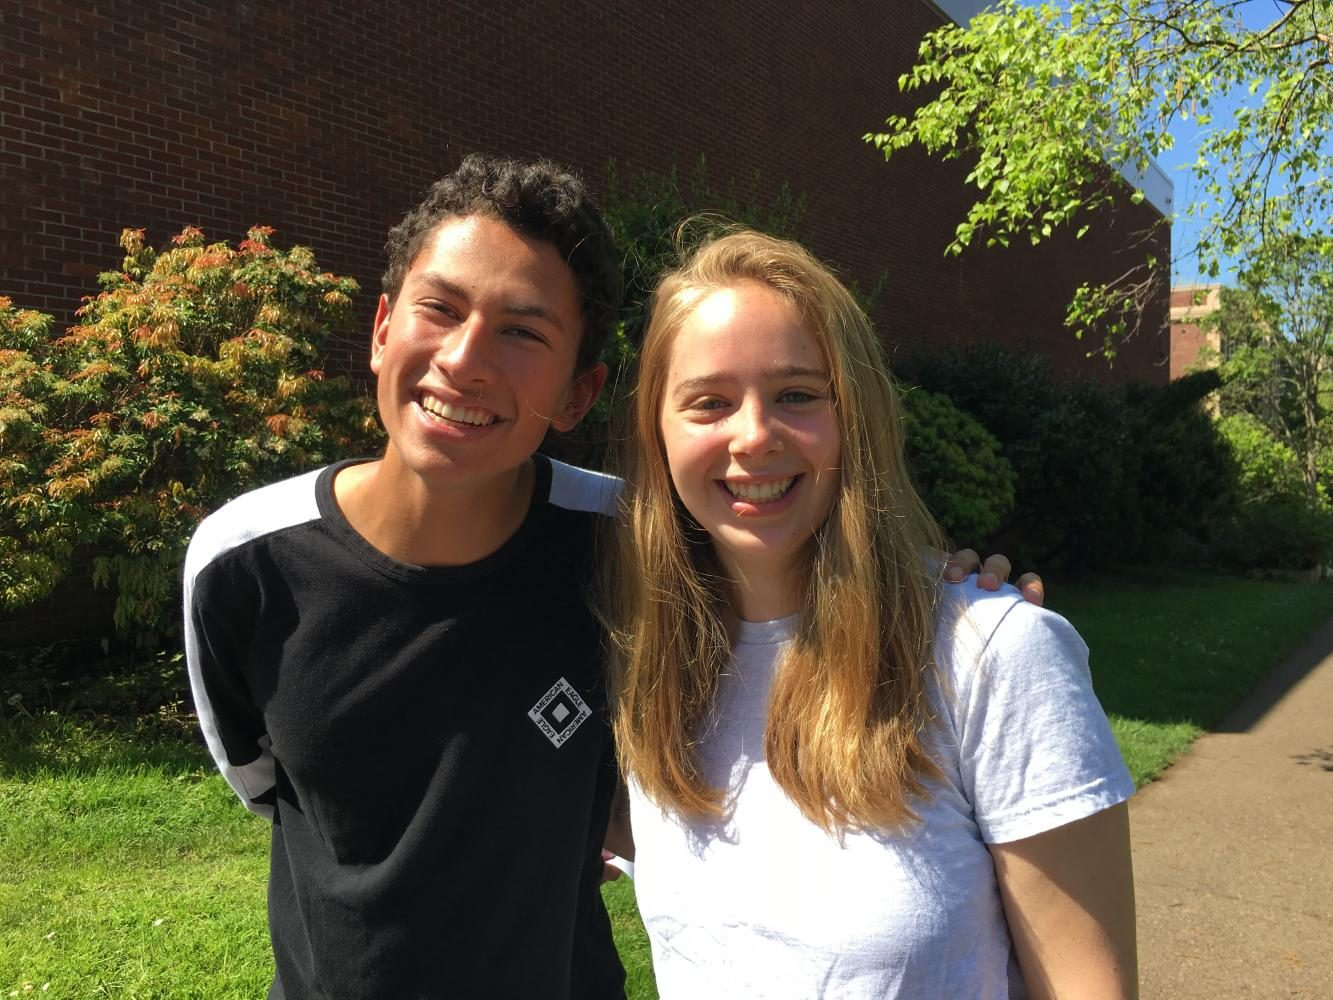 Senior Class co-presidents Adam Nayak and Emily Swinth. Image provided by Emily Swinth.